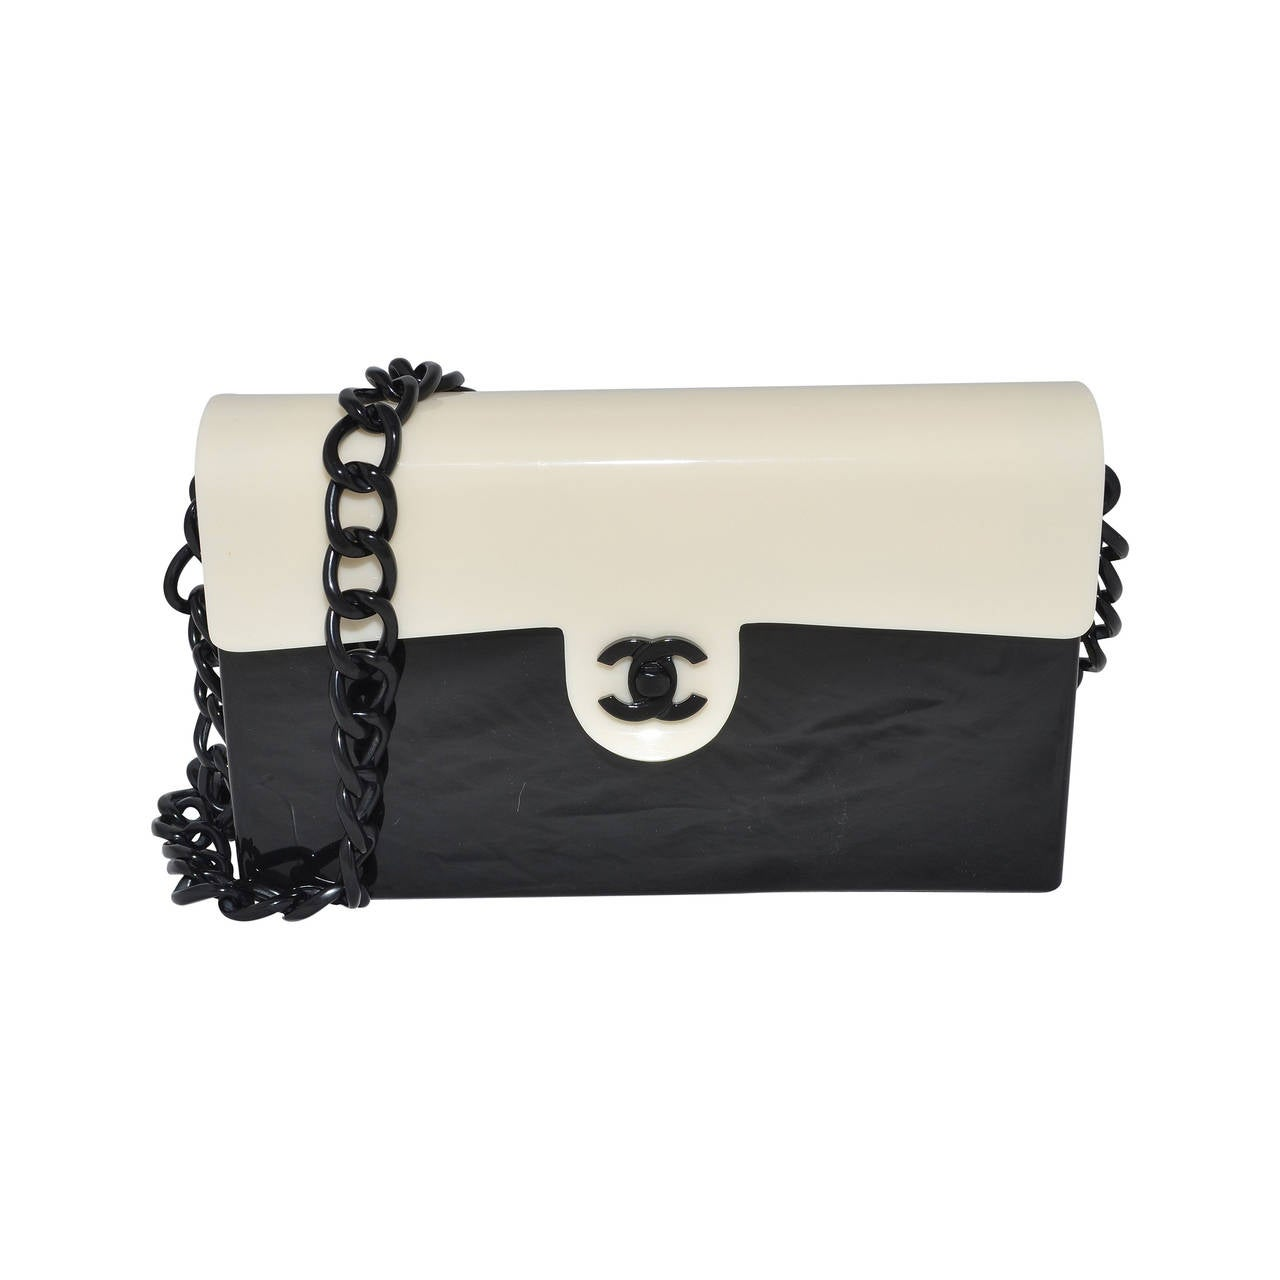 354bf1a39aa9ac Chanel 2000-2002 Black and White Lucite Perspex RARE Vintage Bag at 1stdibs